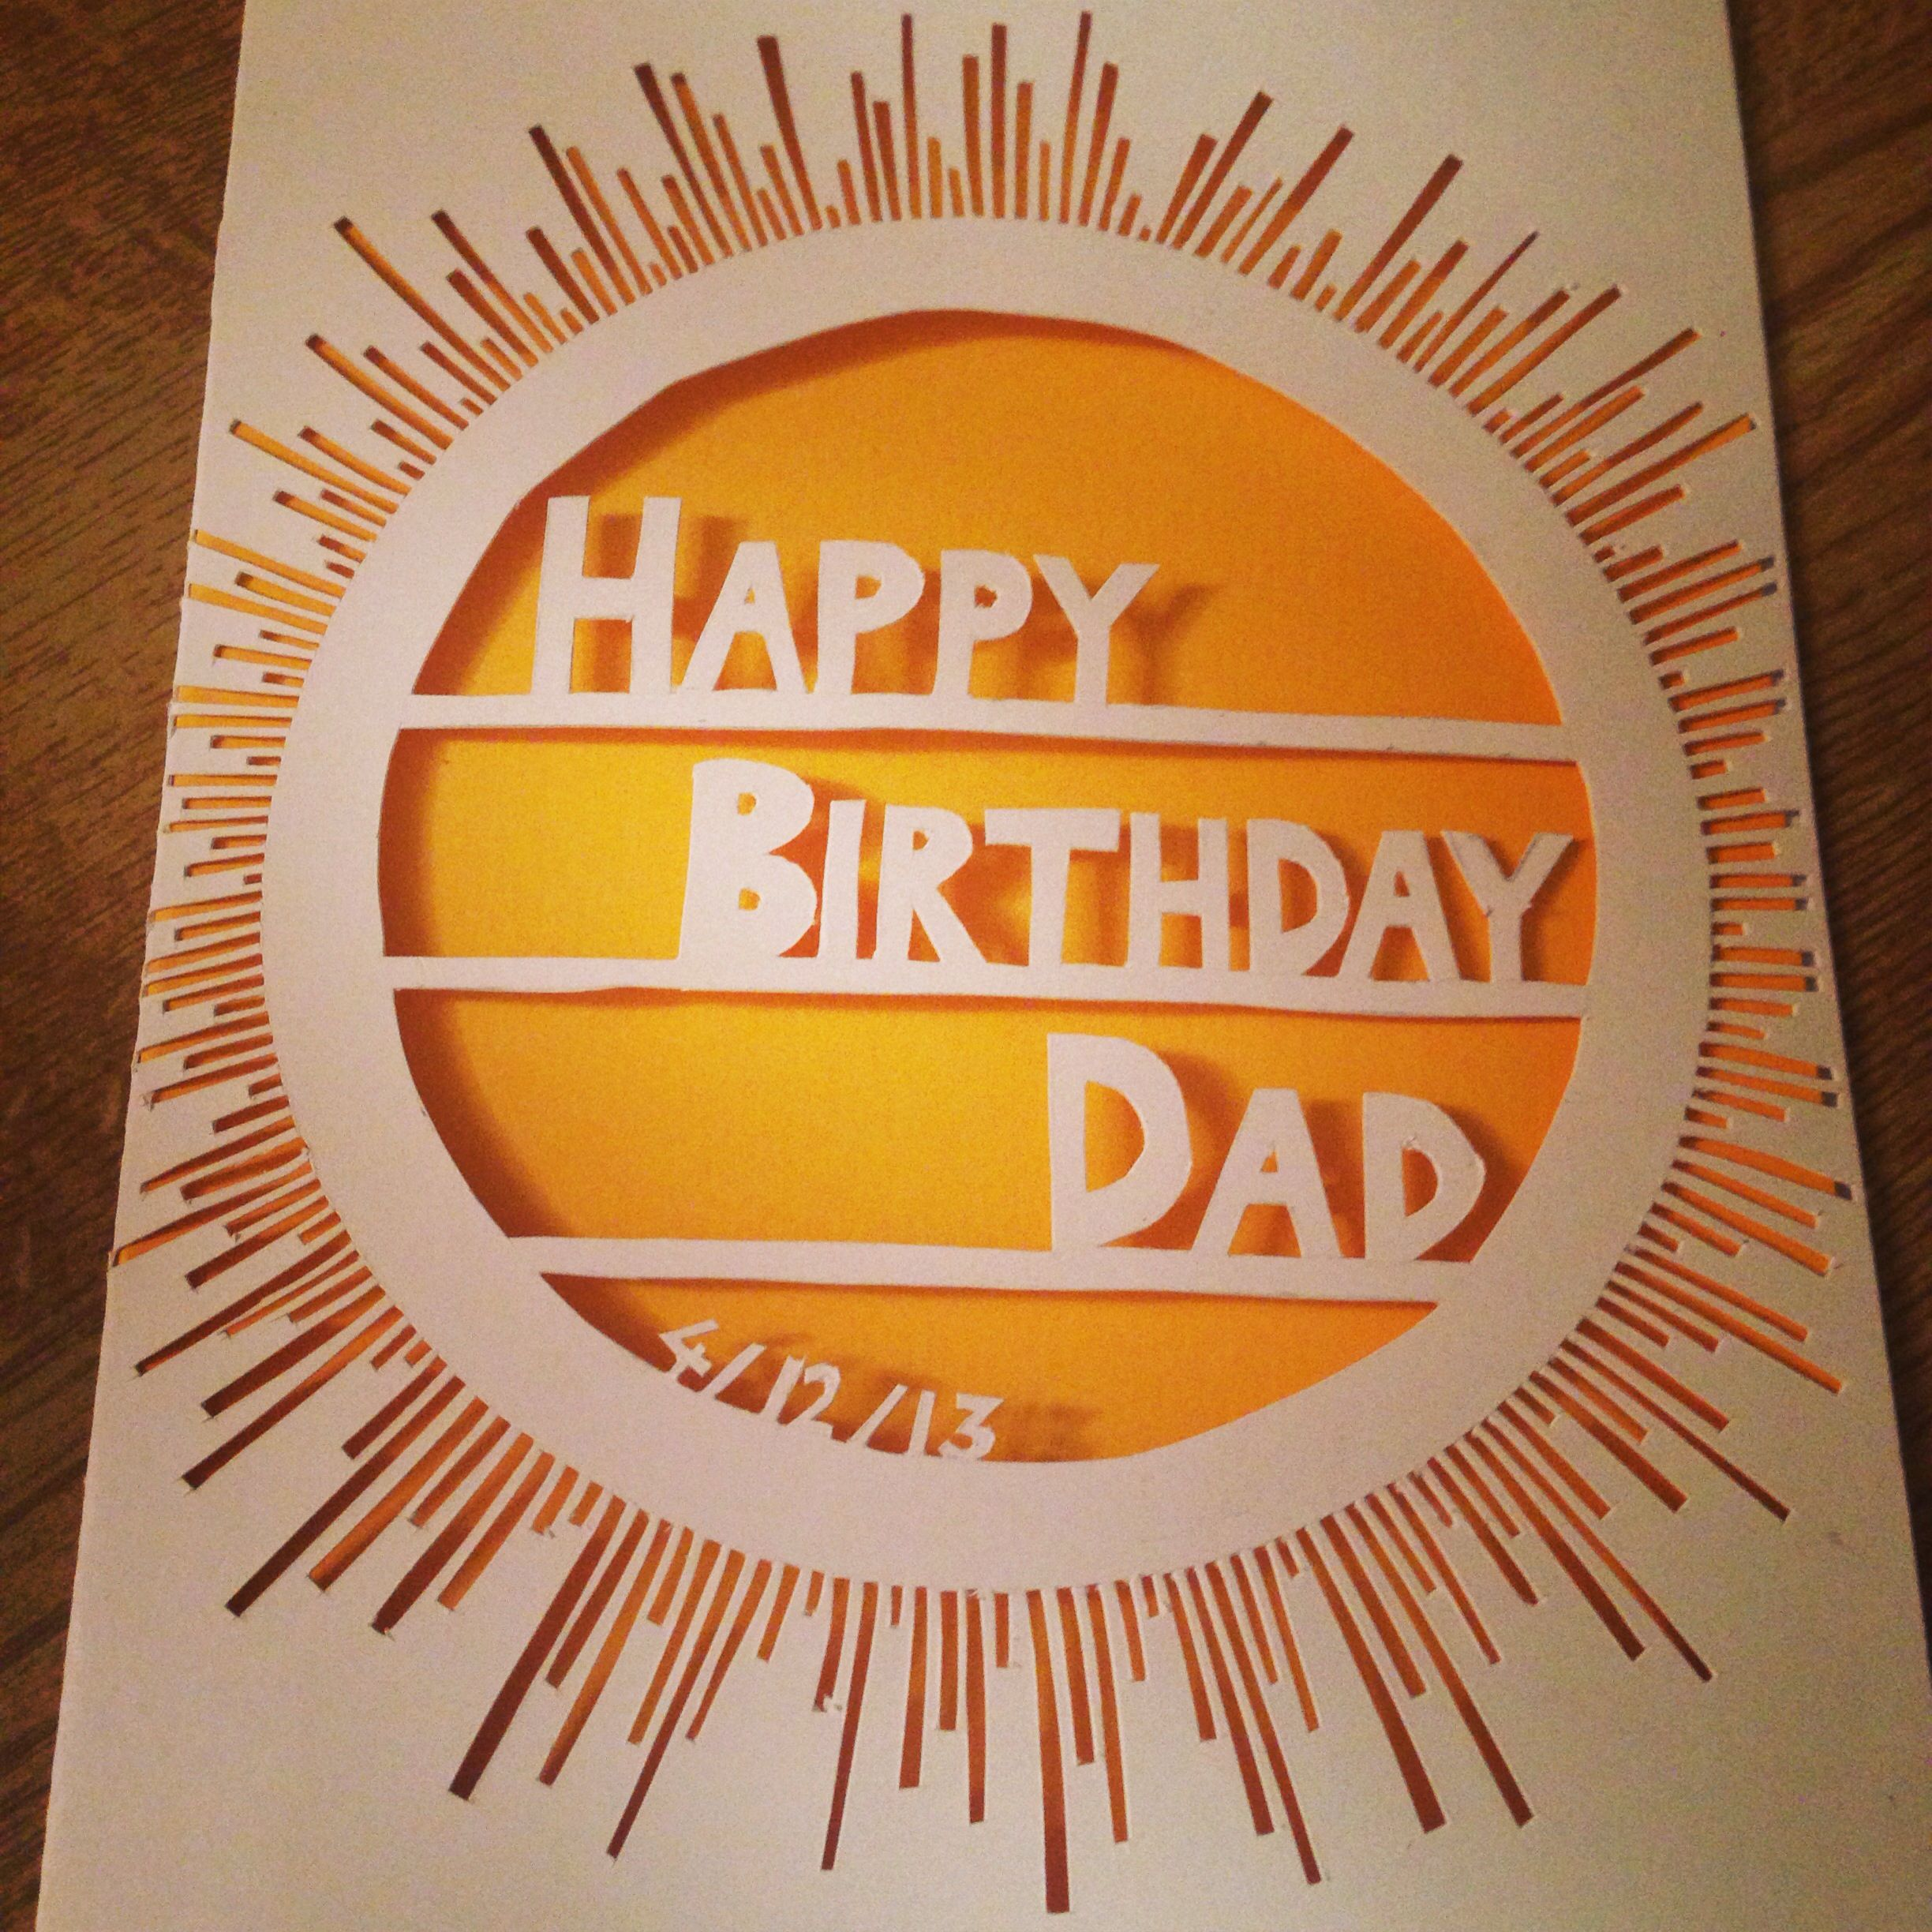 Dads Birthday Card